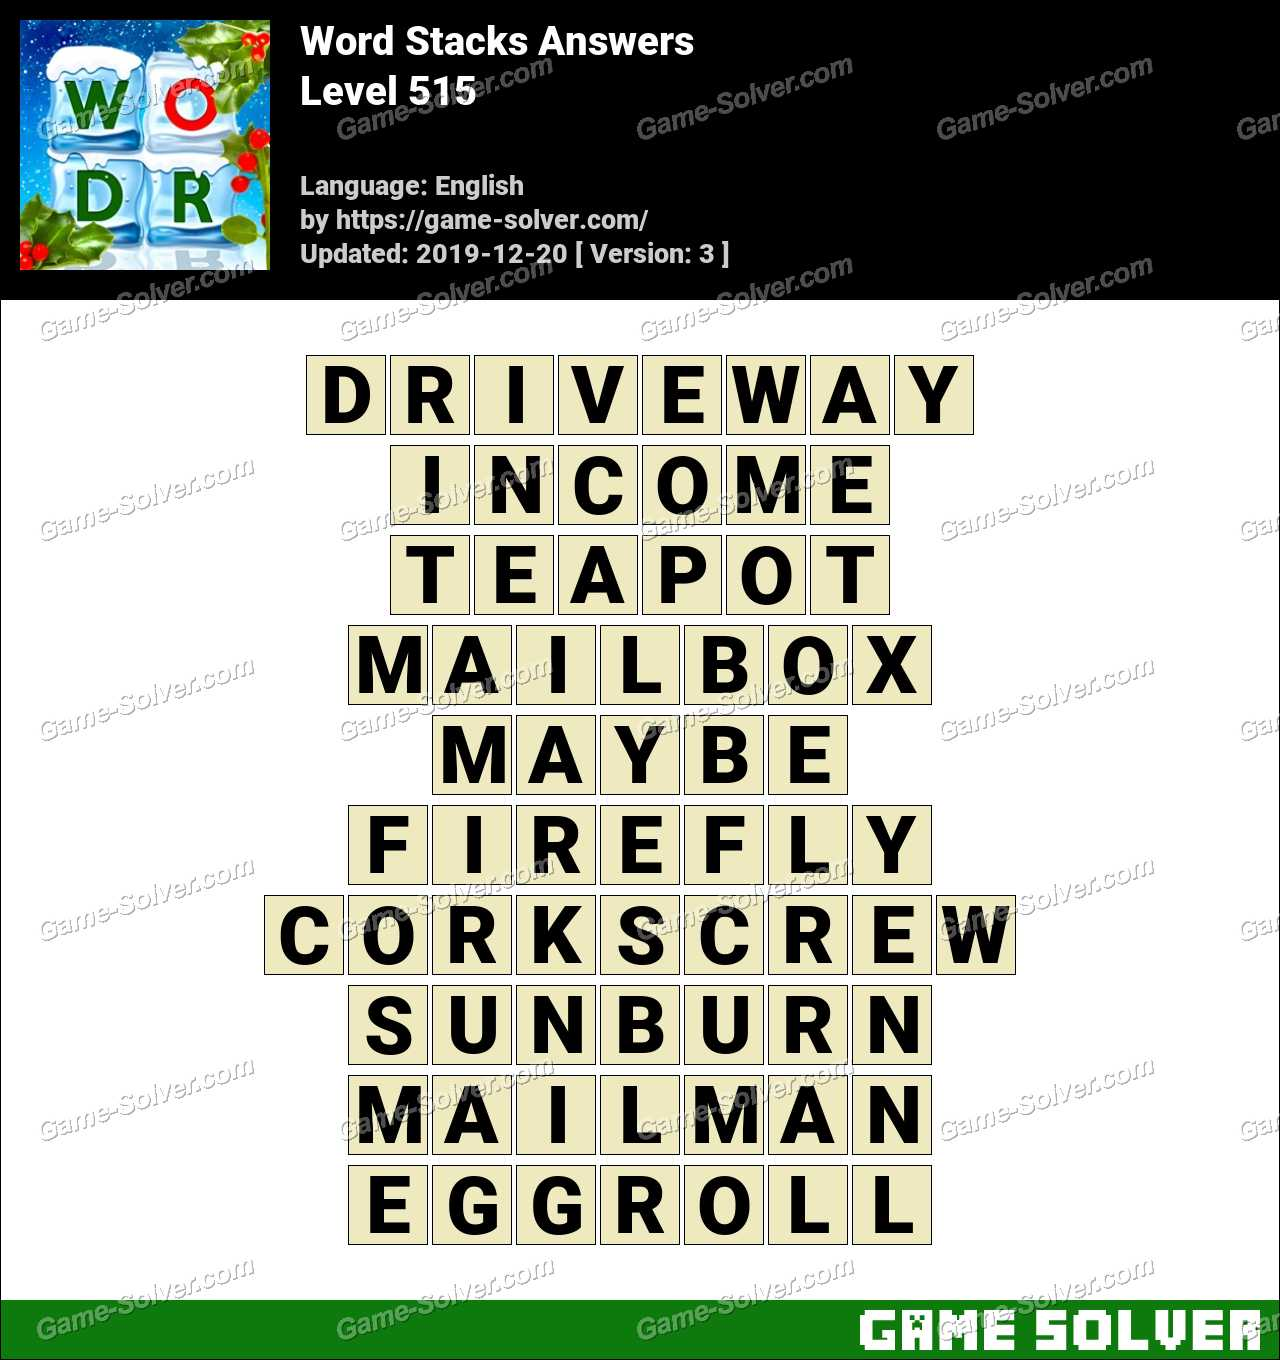 Word Stacks Level 515 Answers